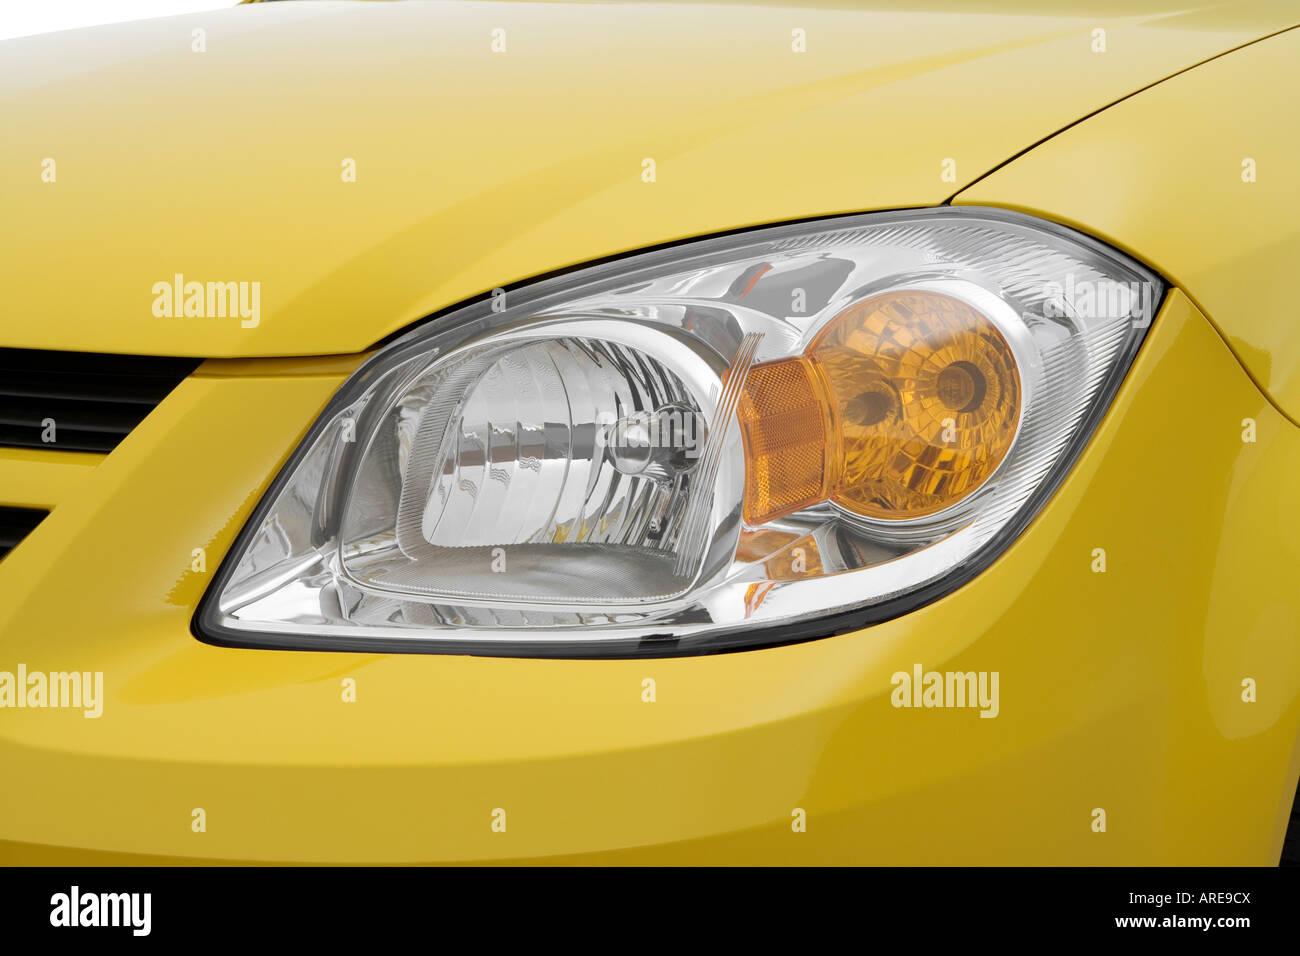 2006 Chevrolet Cobalt SS in Yellow - Headlight